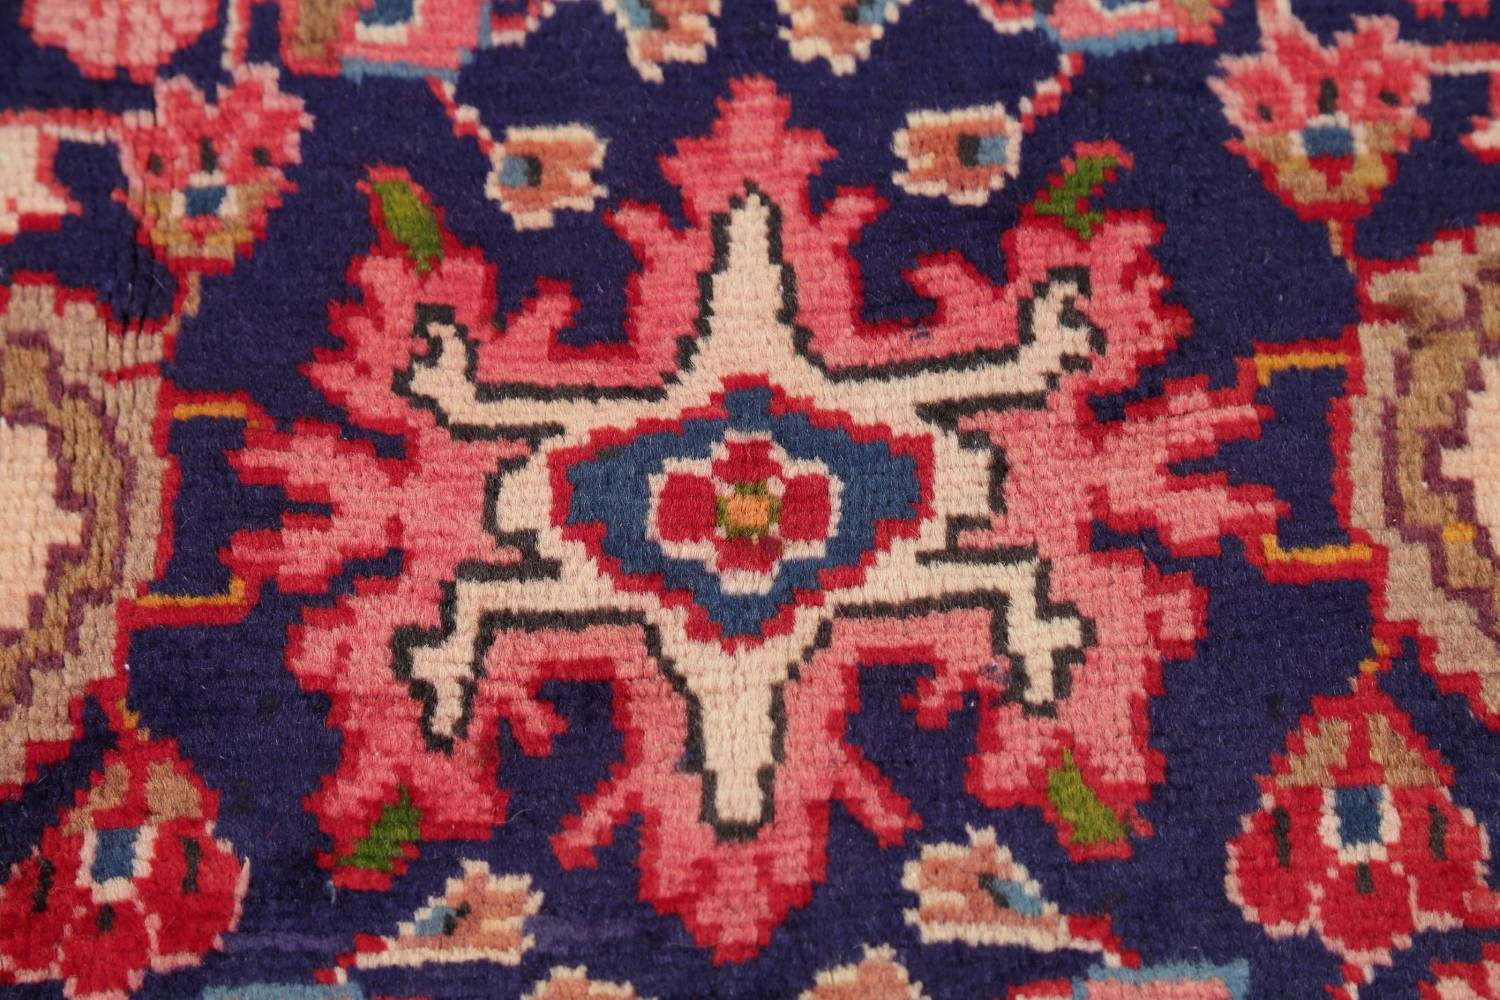 Geometric Sultanabad Persian Hand-Knotted 4x11 Wool Runner Rug image 9